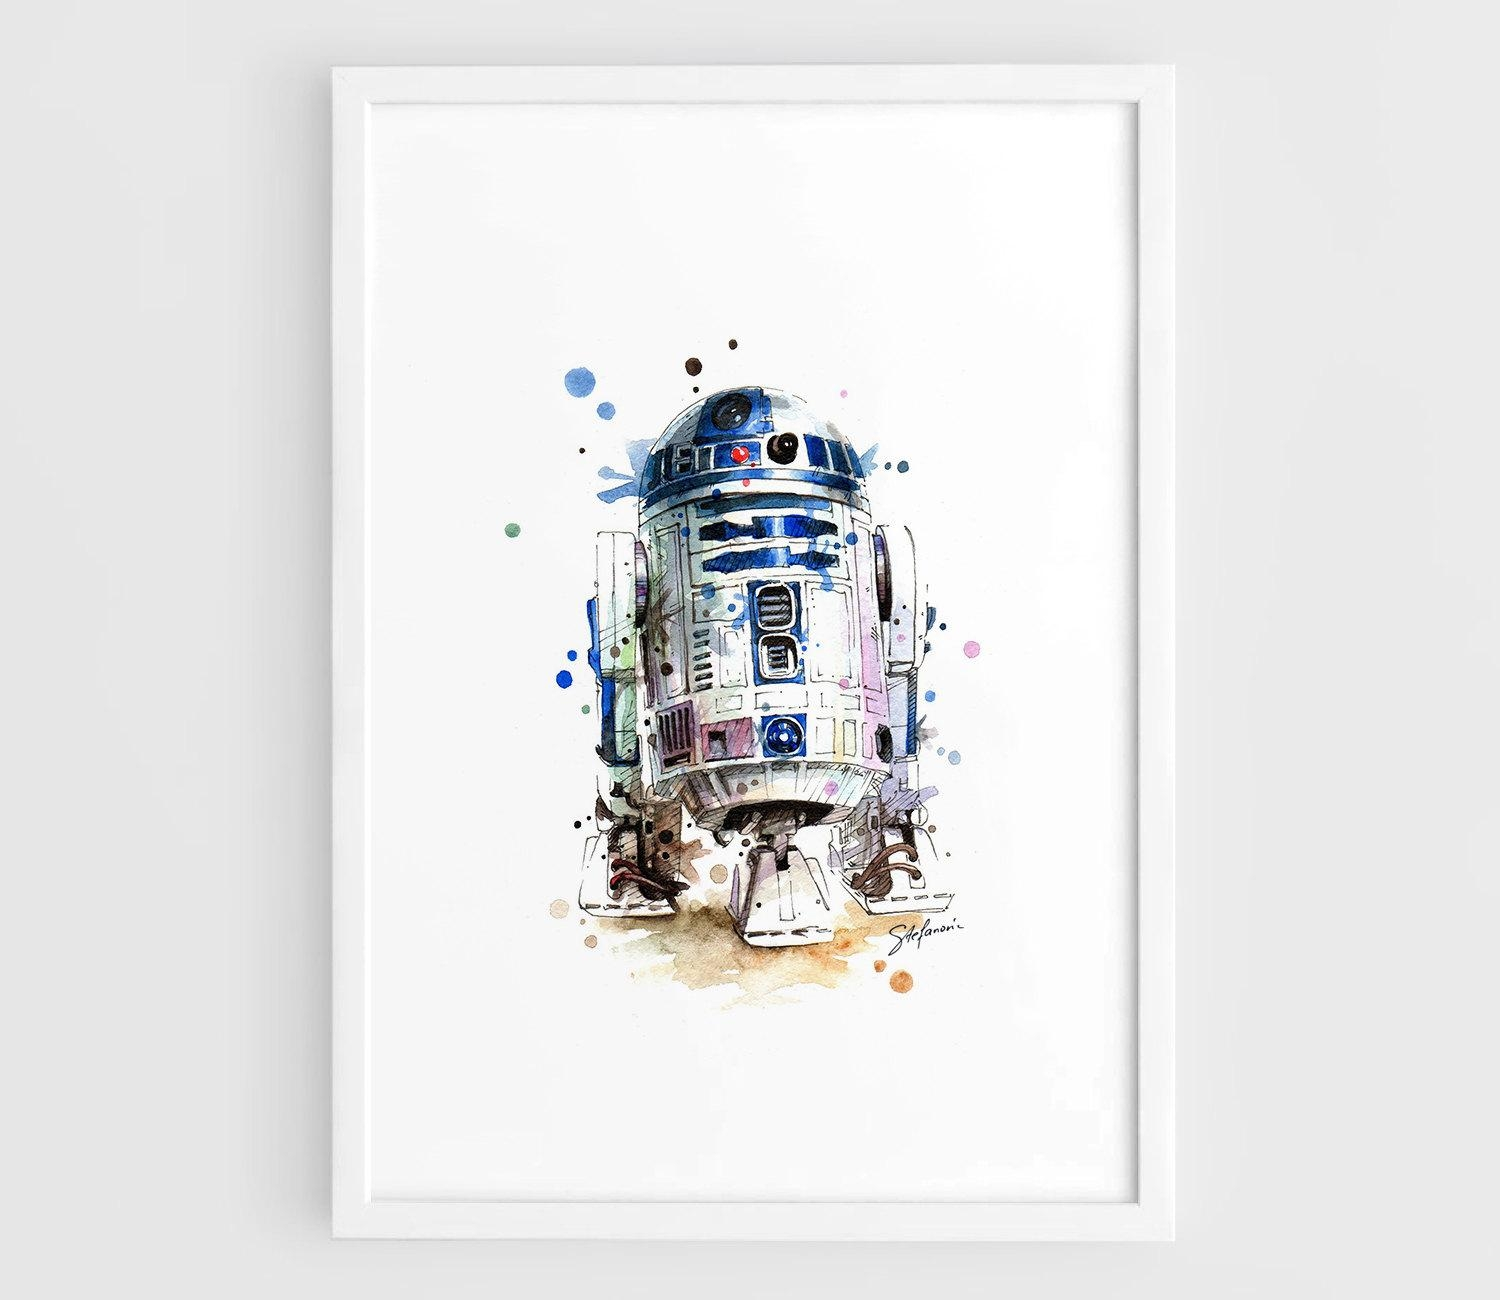 R2D2 Star Wars Movie Poster R2D2 Art Poster Star Wars Art Intended For Diy Star Wars Wall Art (View 19 of 20)